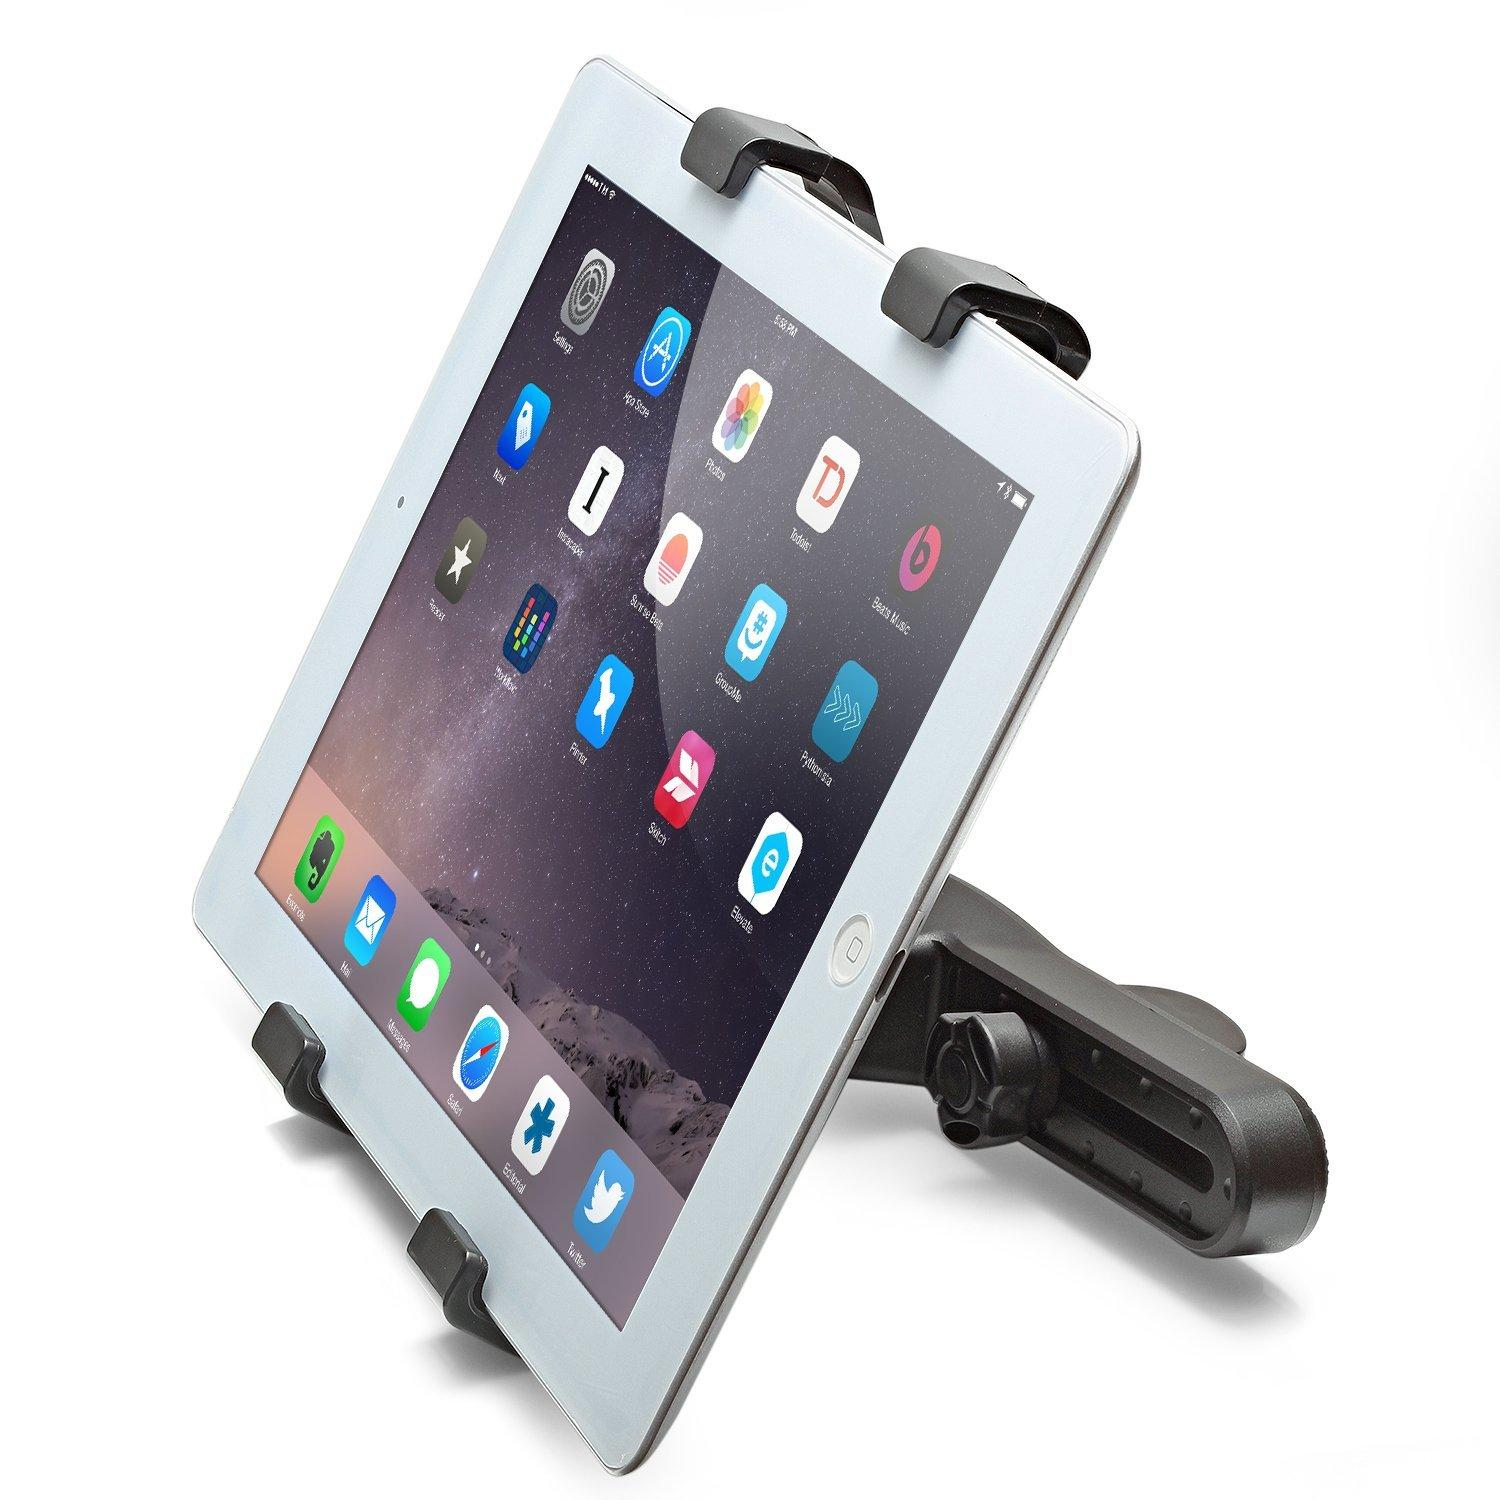 Aduro U-Grip Adjustable Universal Car Headrest Mount for Tablets